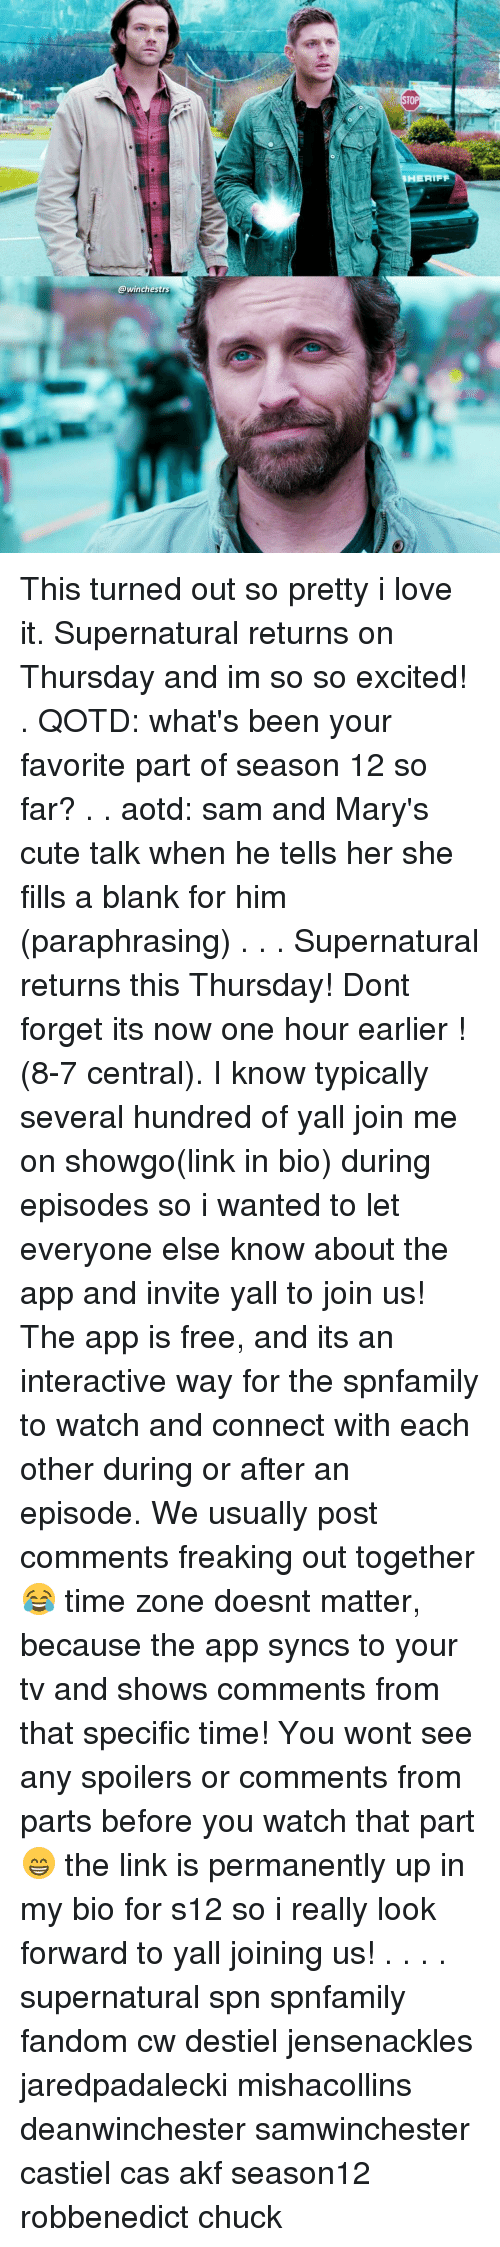 Memes, join.me, and Blank: @winchestrs  HERIFF This turned out so pretty i love it. Supernatural returns on Thursday and im so so excited! . QOTD: what's been your favorite part of season 12 so far? . . aotd: sam and Mary's cute talk when he tells her she fills a blank for him (paraphrasing) . . . Supernatural returns this Thursday! Dont forget its now one hour earlier ! (8-7 central). I know typically several hundred of yall join me on showgo(link in bio) during episodes so i wanted to let everyone else know about the app and invite yall to join us! The app is free, and its an interactive way for the spnfamily to watch and connect with each other during or after an episode. We usually post comments freaking out together 😂 time zone doesnt matter, because the app syncs to your tv and shows comments from that specific time! You wont see any spoilers or comments from parts before you watch that part 😁 the link is permanently up in my bio for s12 so i really look forward to yall joining us! . . . . supernatural spn spnfamily fandom cw destiel jensenackles jaredpadalecki mishacollins deanwinchester samwinchester castiel cas akf season12 robbenedict chuck